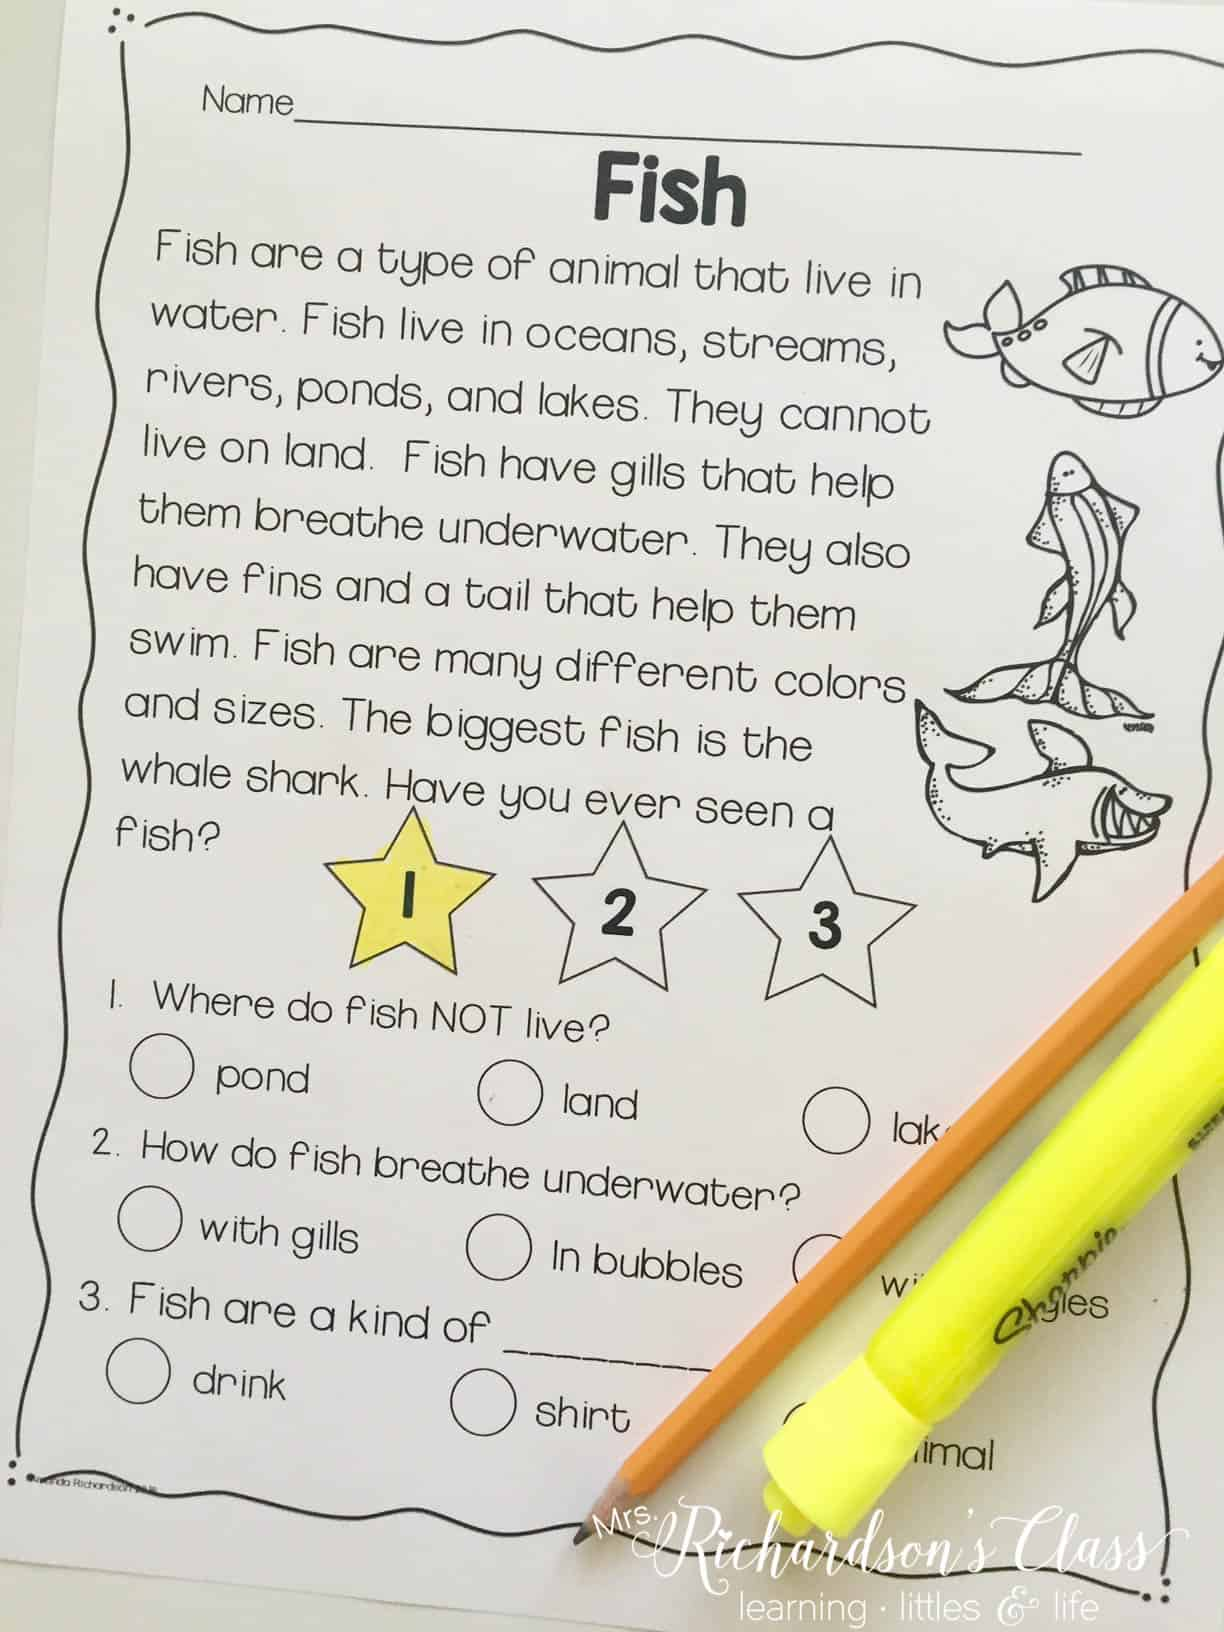 Close reading passages for first grade students that are non-fiction and science themed are perfect for integrating science when you are running short on time! Students can think critically about topics that they are engaged in and you, the teacher, squeeze in science!